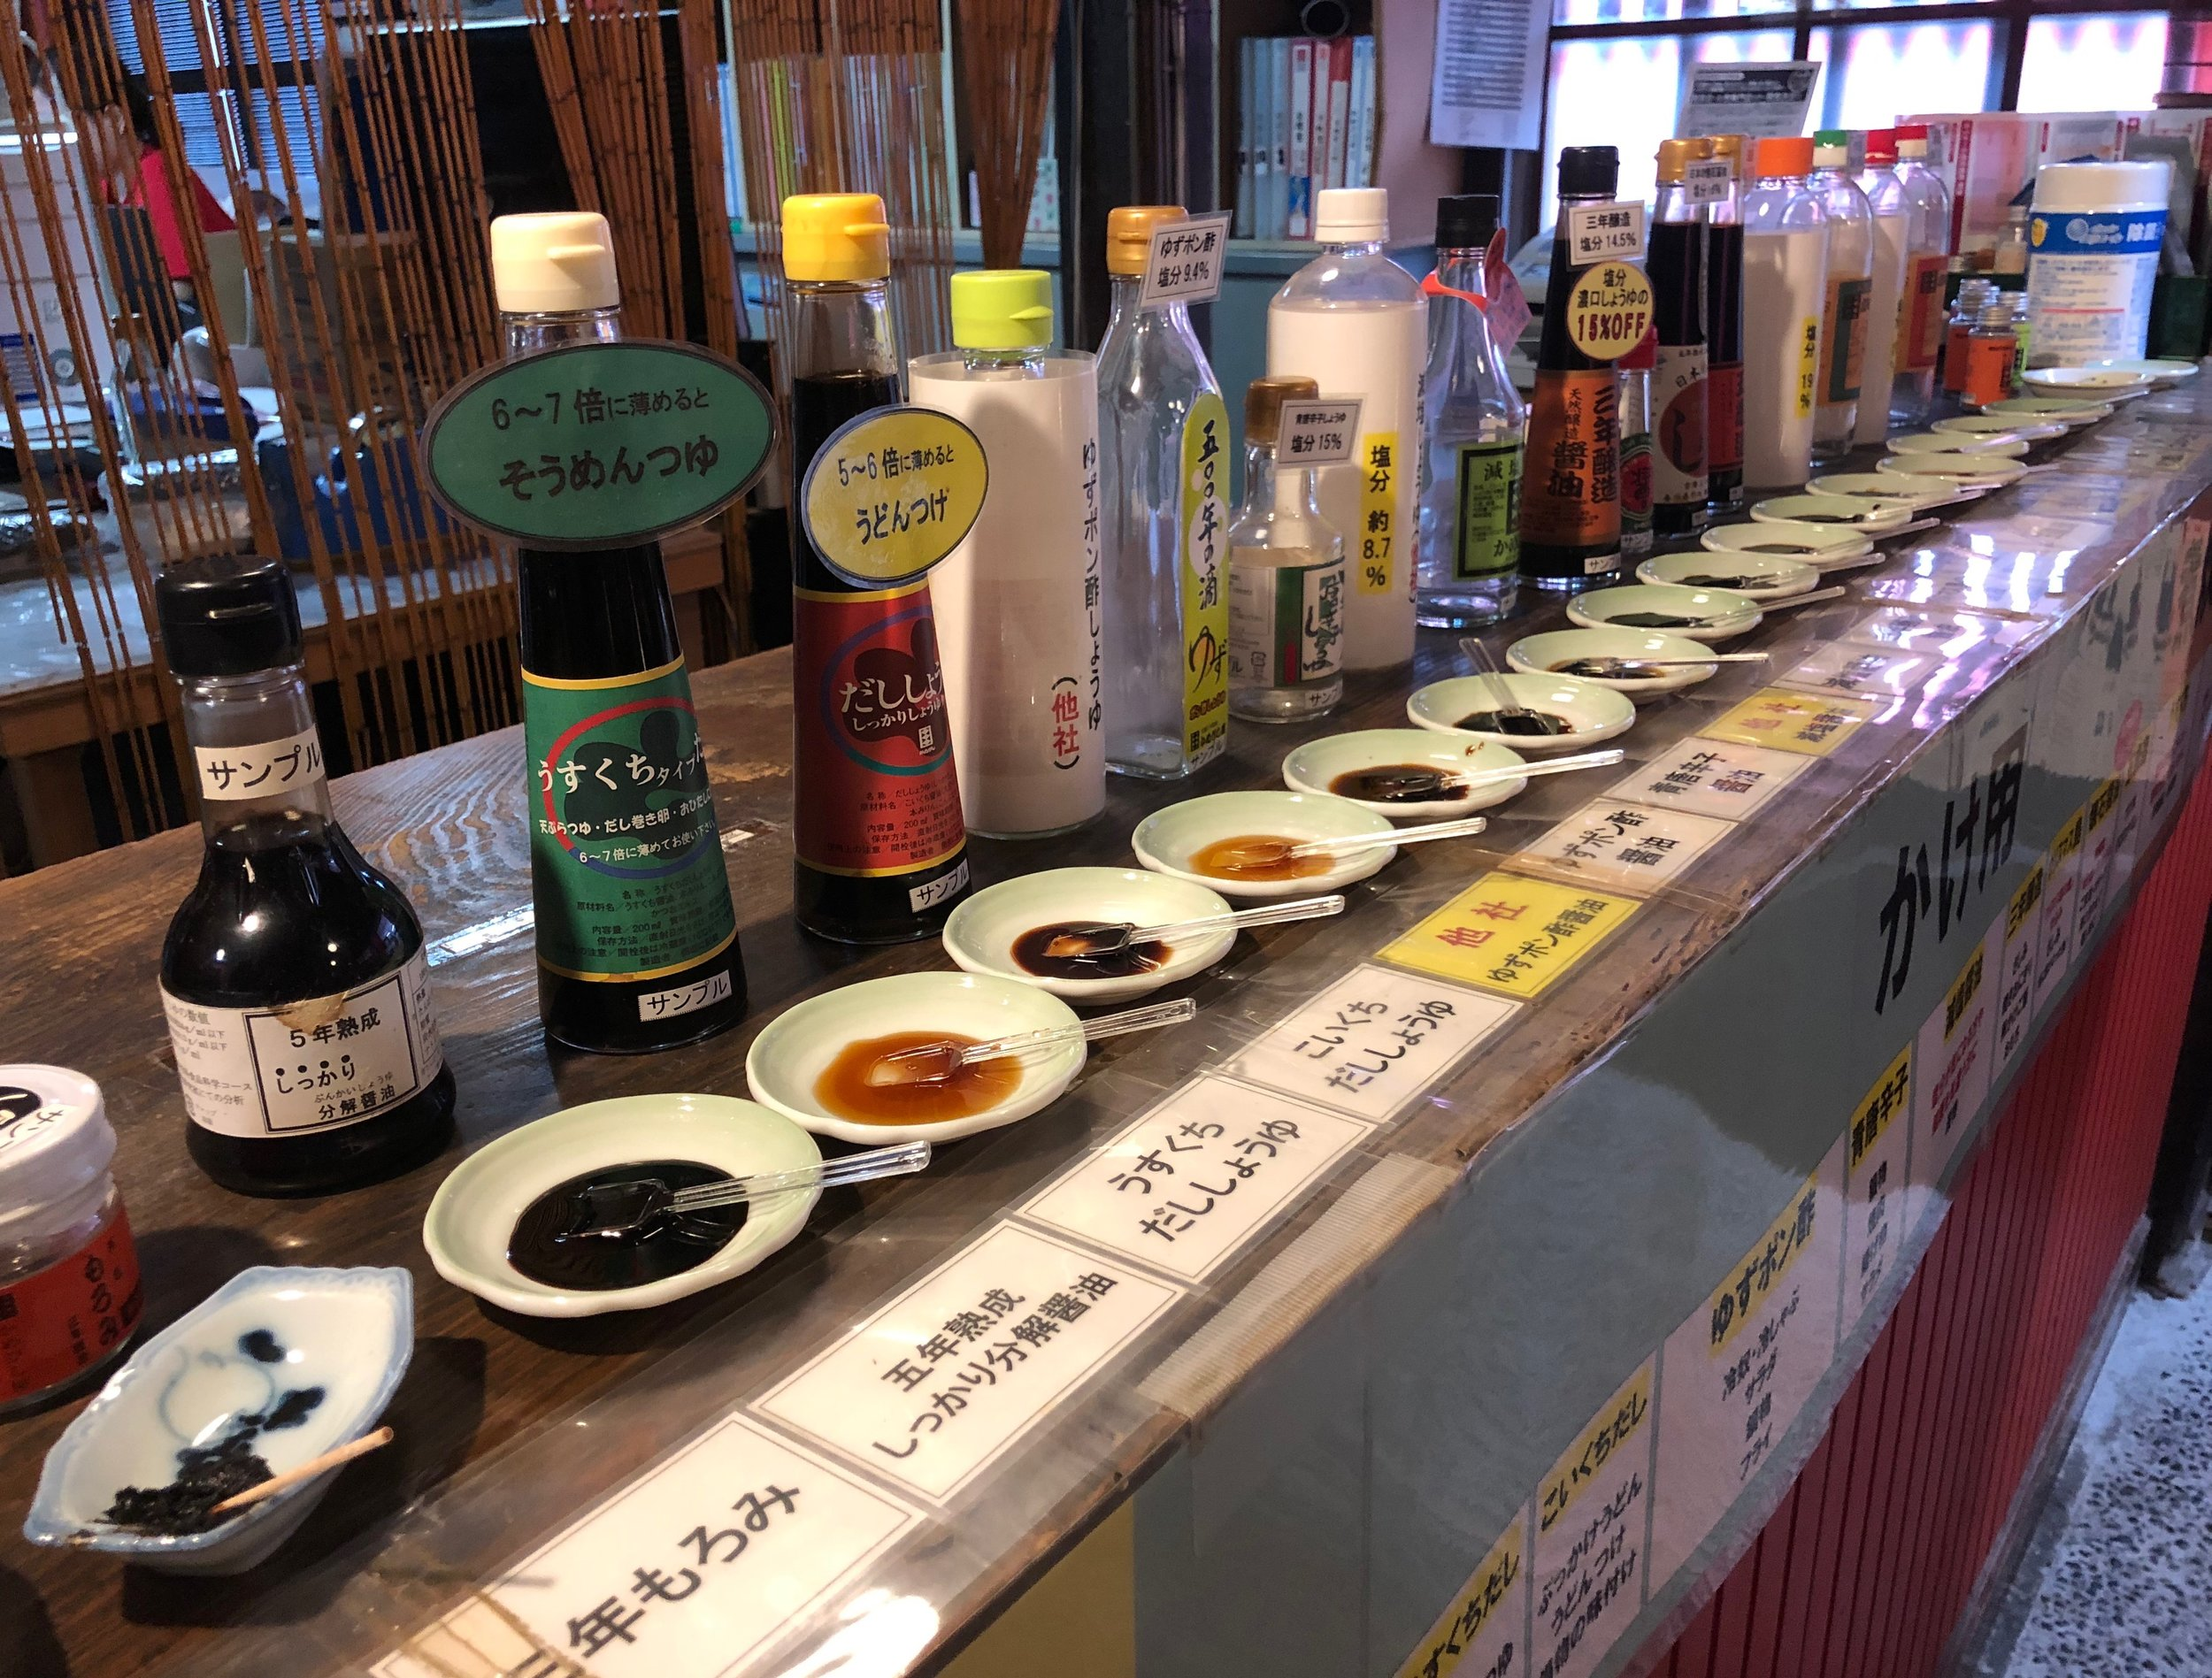 The array of soy sauce products available for tasting in the shop at Kamebishiya.